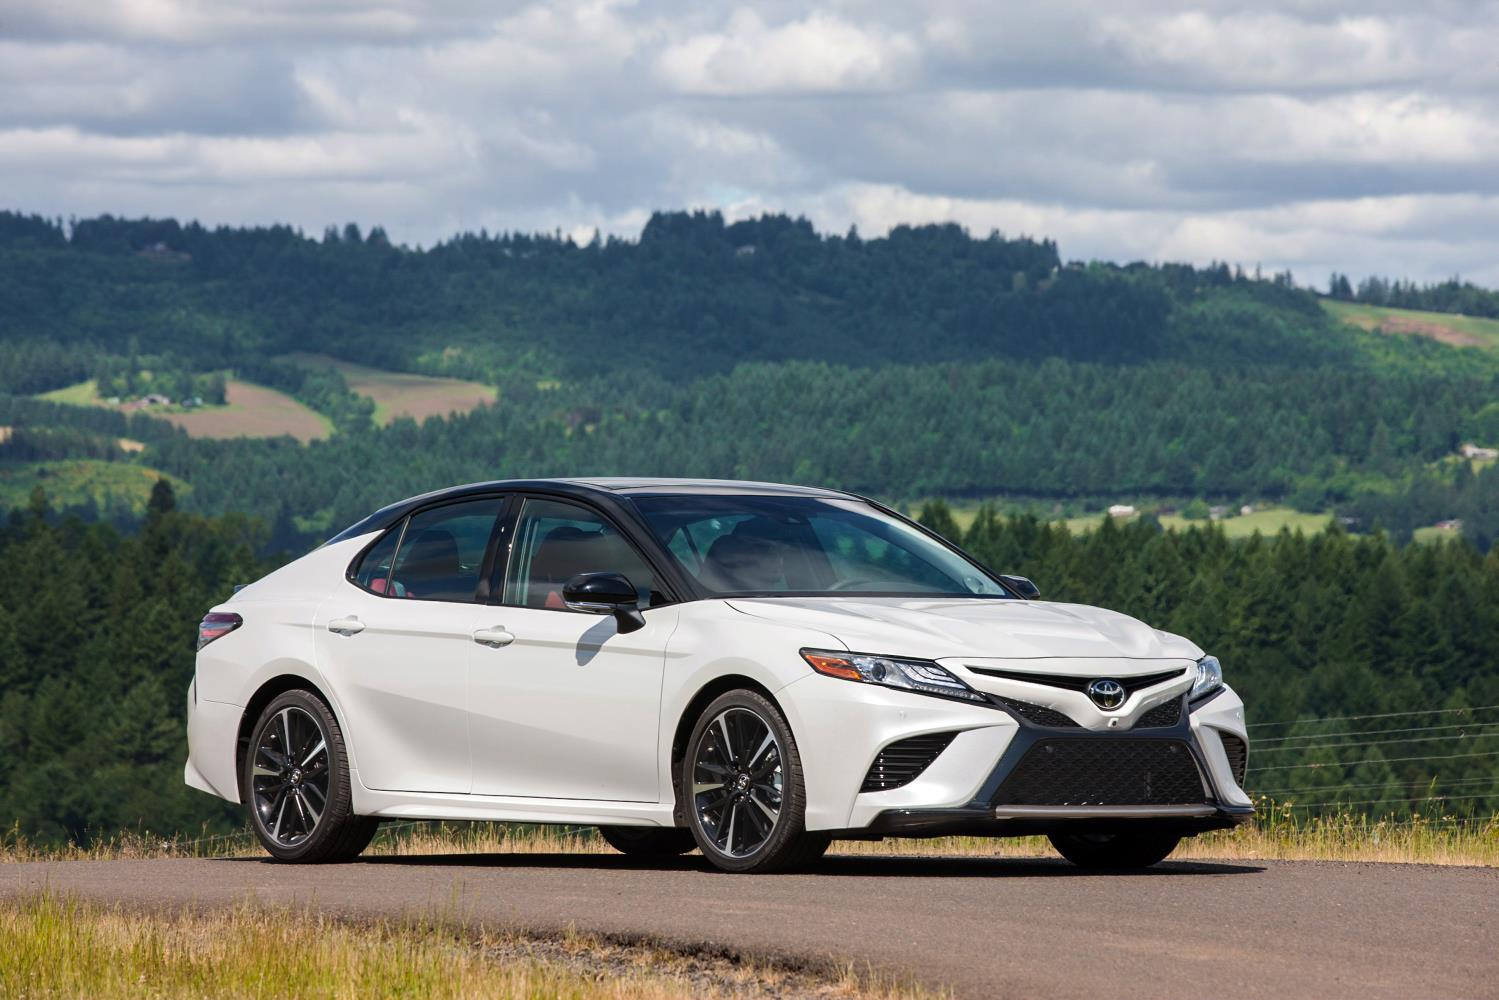 2018 toyota camry rolls into dealers this summer from 23 495 autoevolution. Black Bedroom Furniture Sets. Home Design Ideas